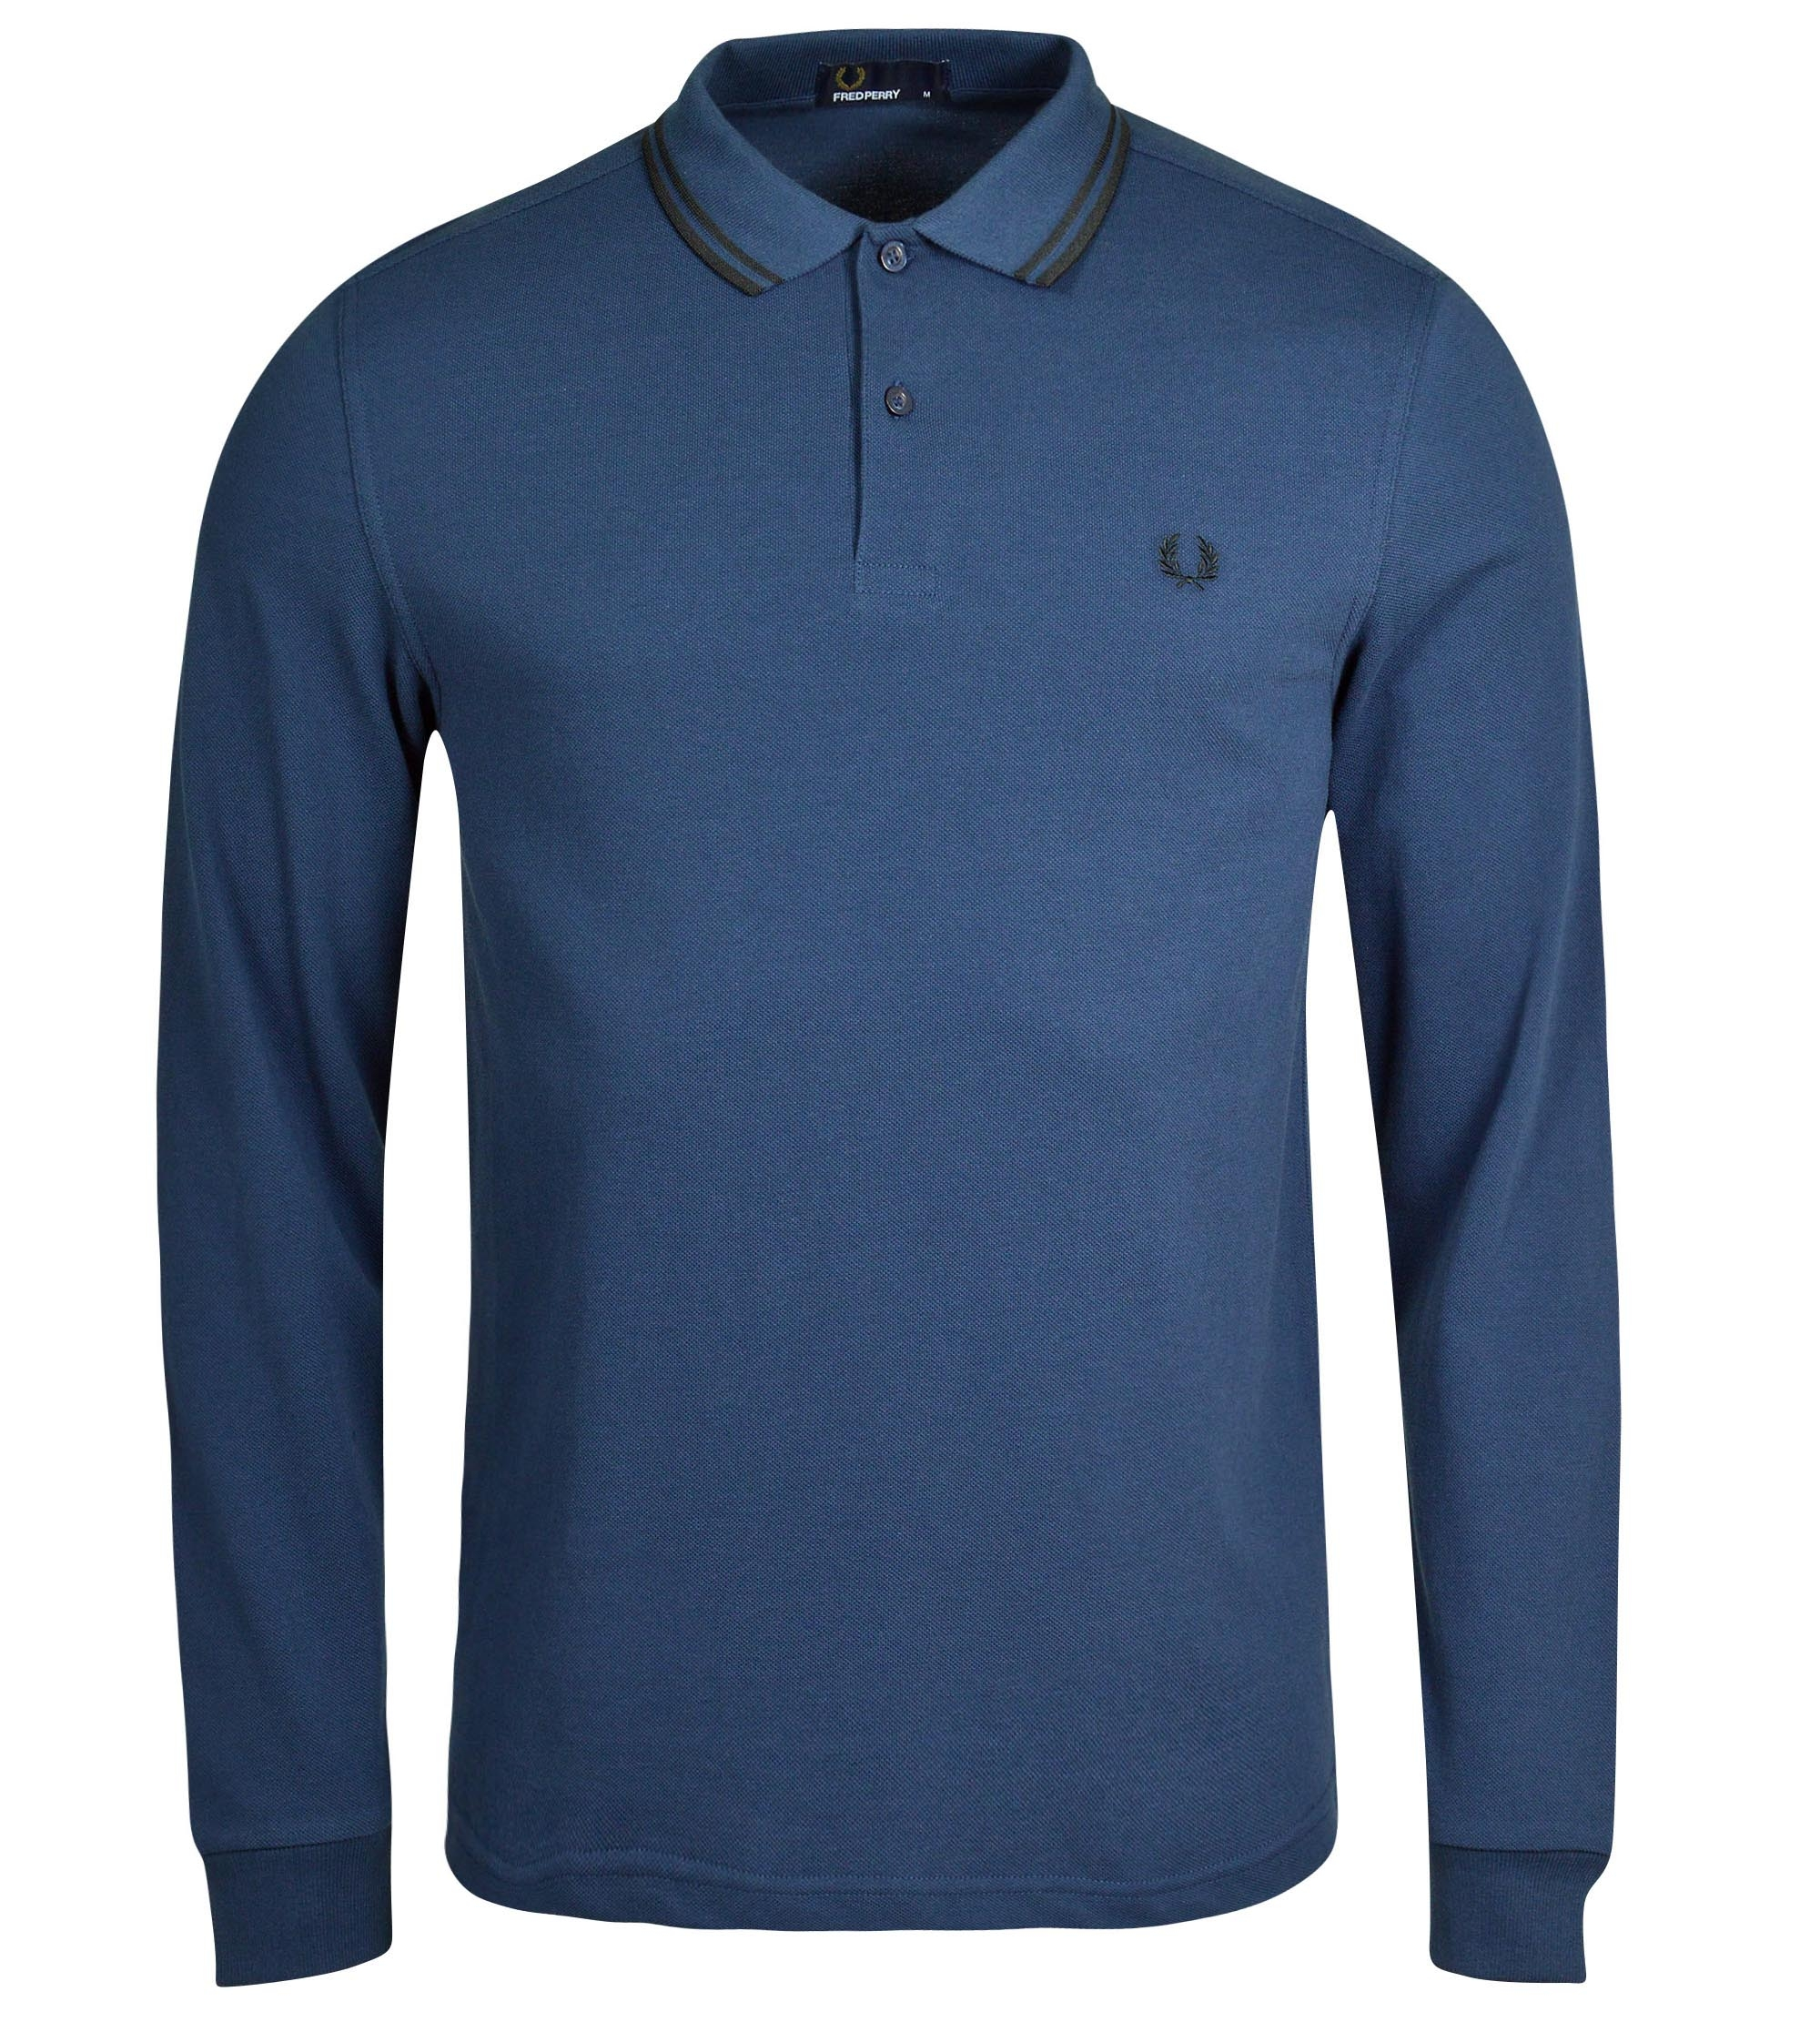 056f8a43c5 Ανδρικό Polo Fred Perry M3636-2 - Glami.gr